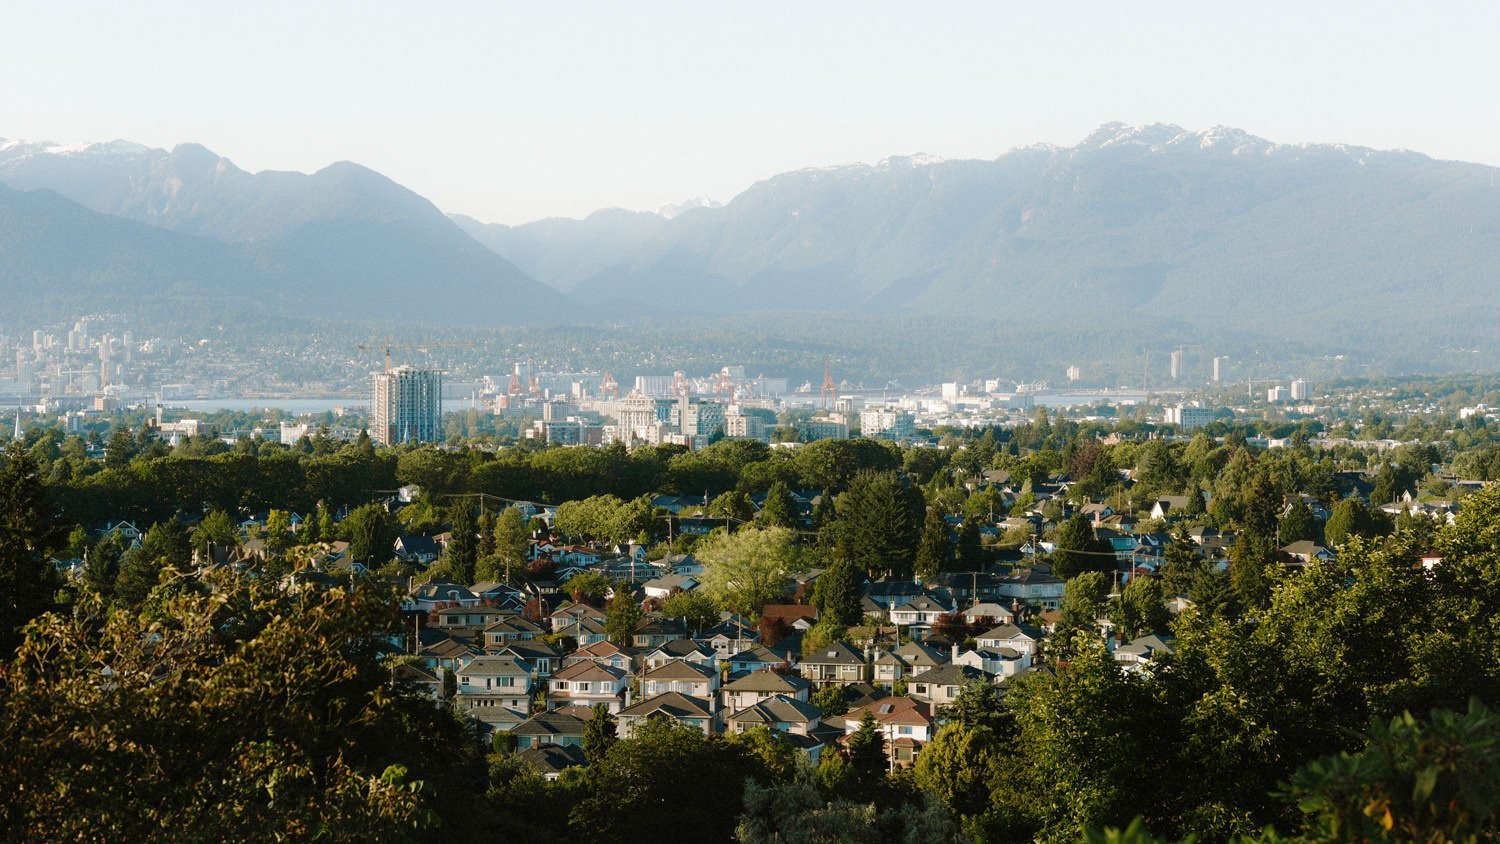 vancouver city view from highest point at qe park